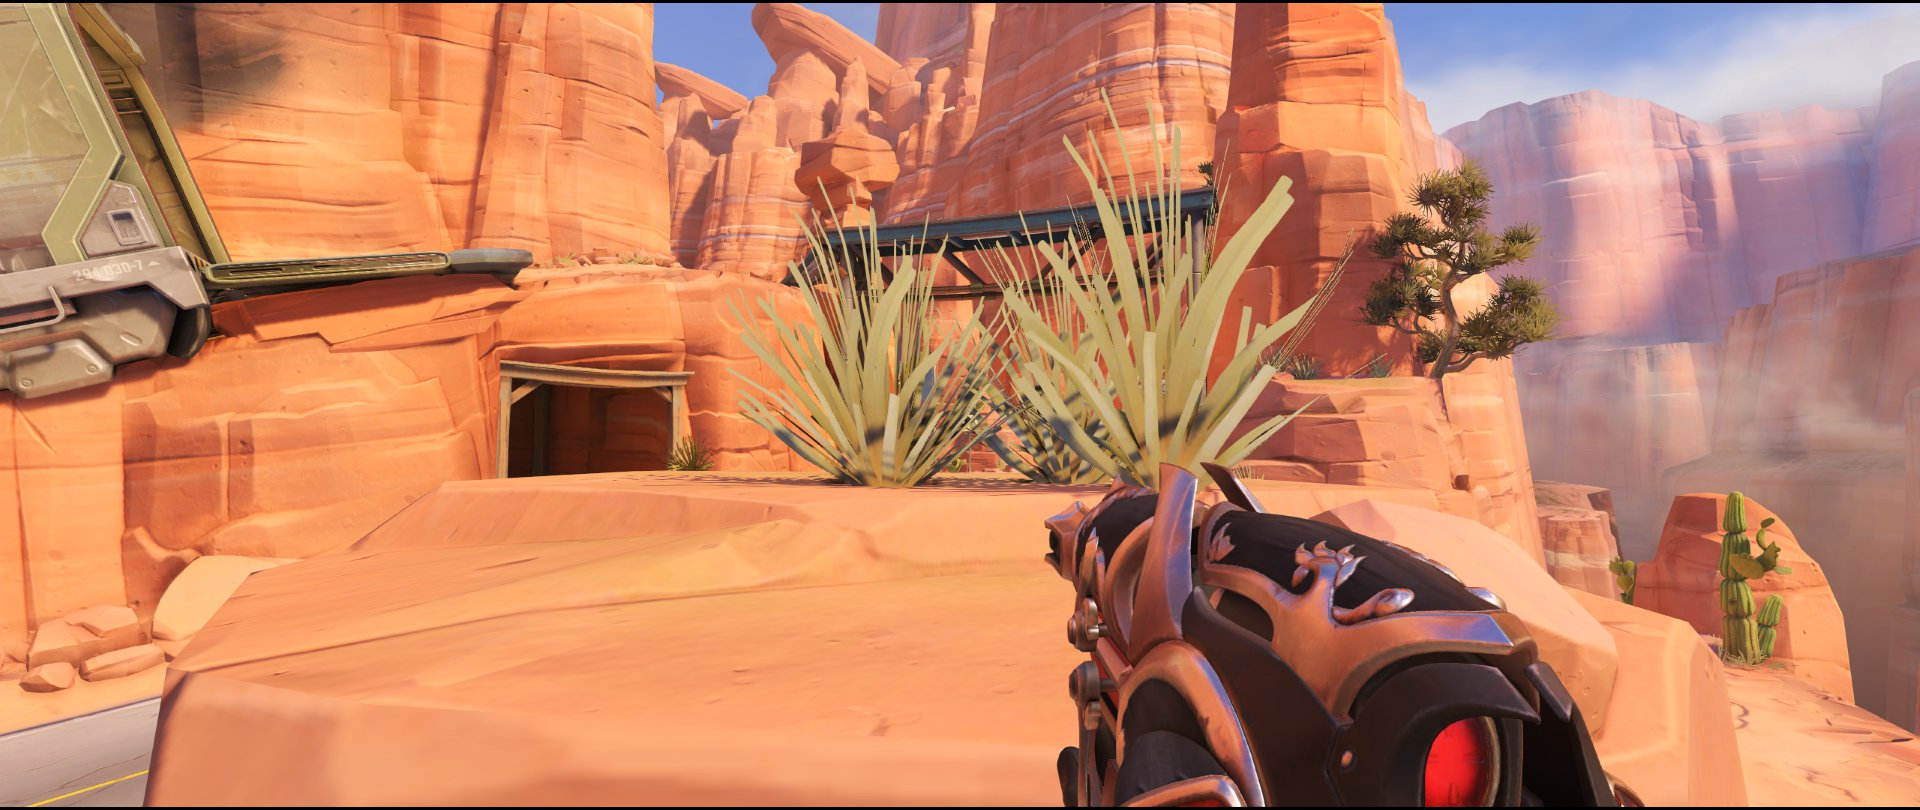 Rock right side wagon attack sniping spot Widowmaker Route 66.jpg